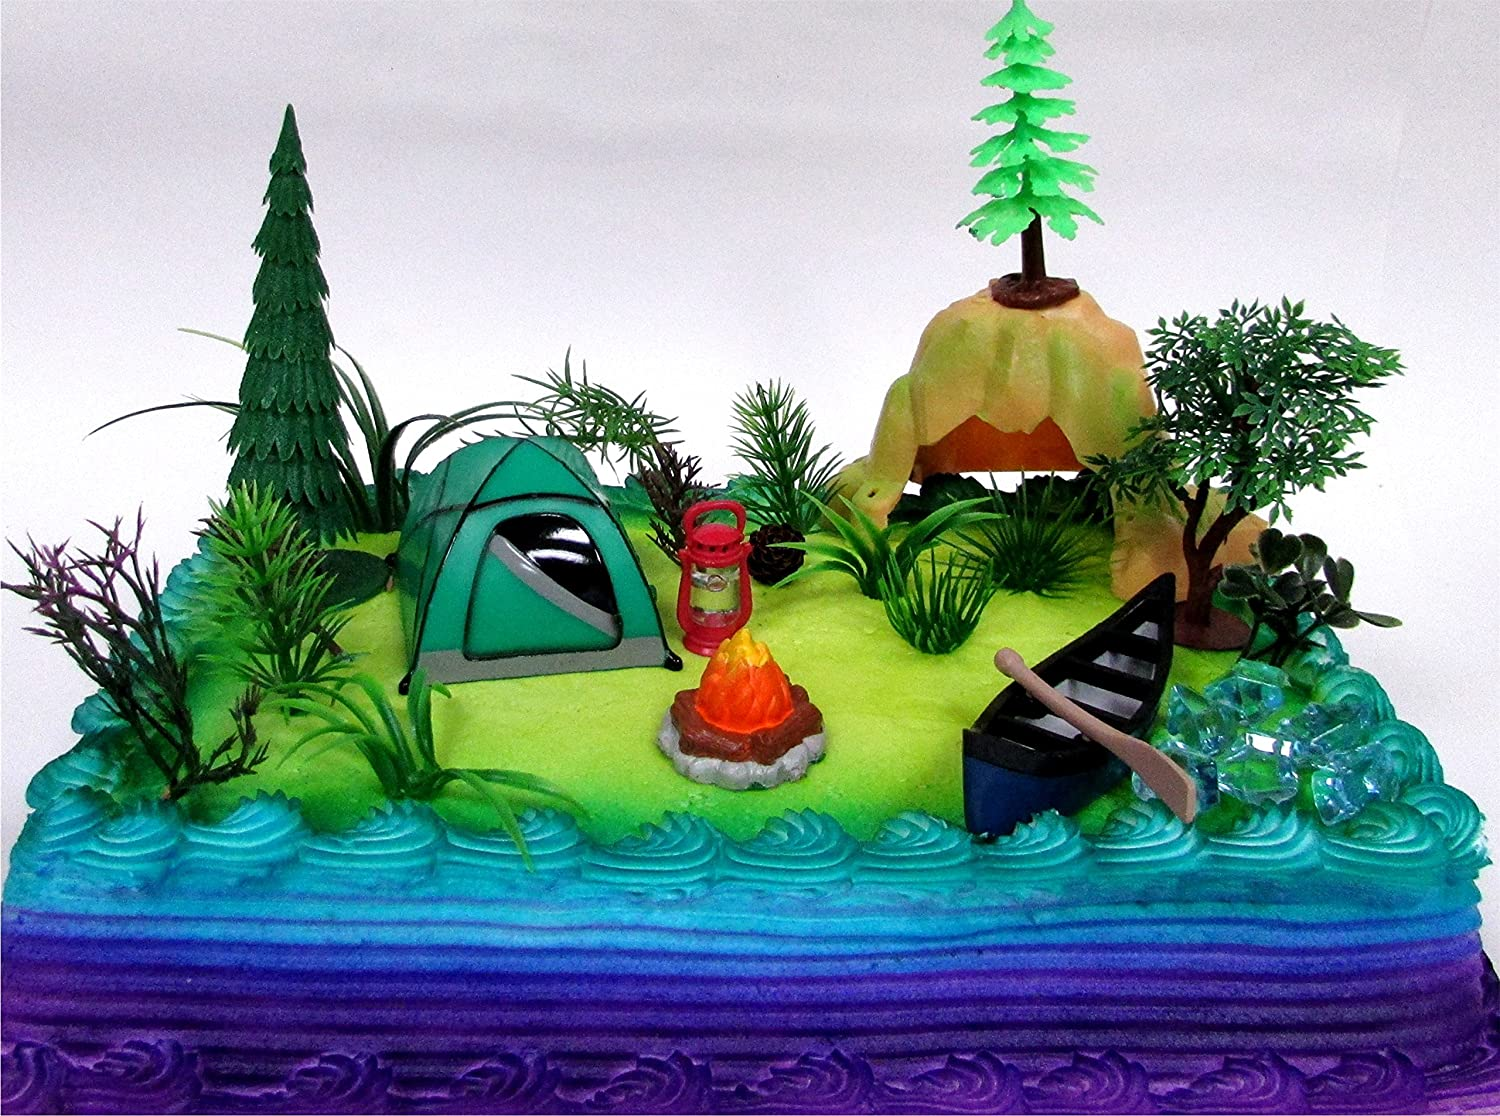 Nature Scene CAMPING 20 Piece Birthday CAKE Topper Set Featuring Camping Items and Decorative Themed Accessories